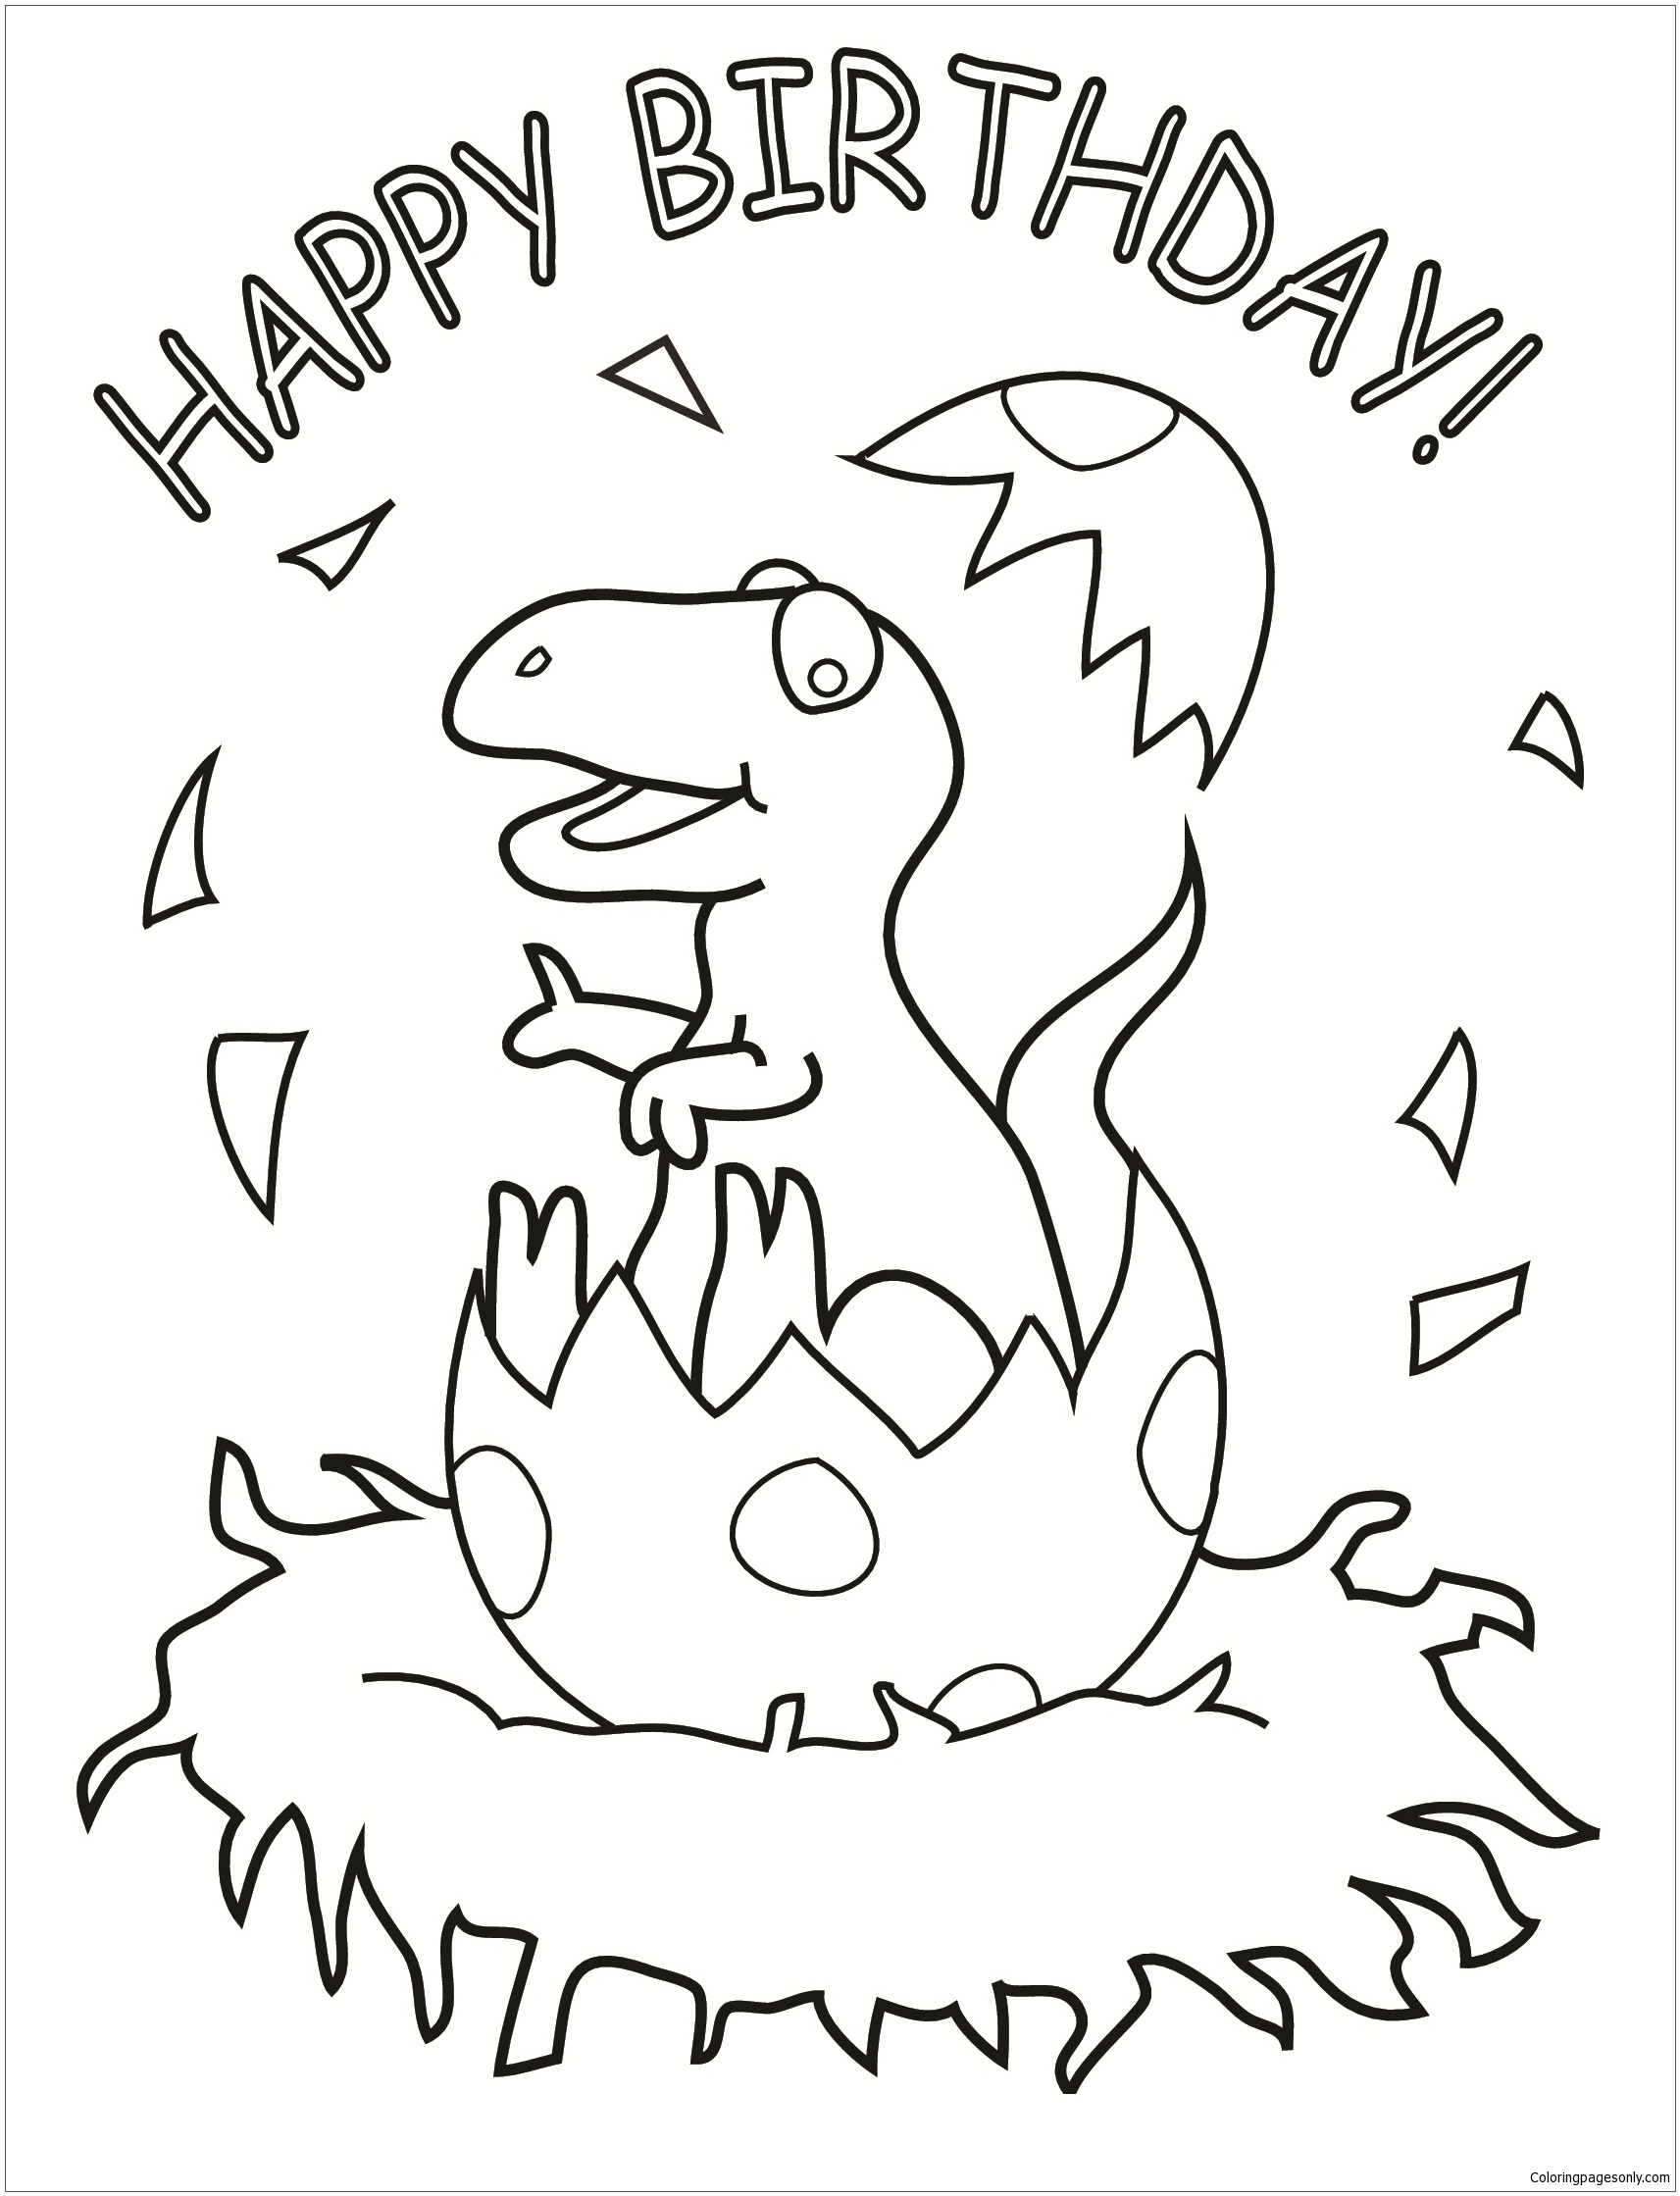 Happy Birthday Dinosaur Coloring Pages Happy Birthday Coloring Pages Free Printable Coloring Pages Online